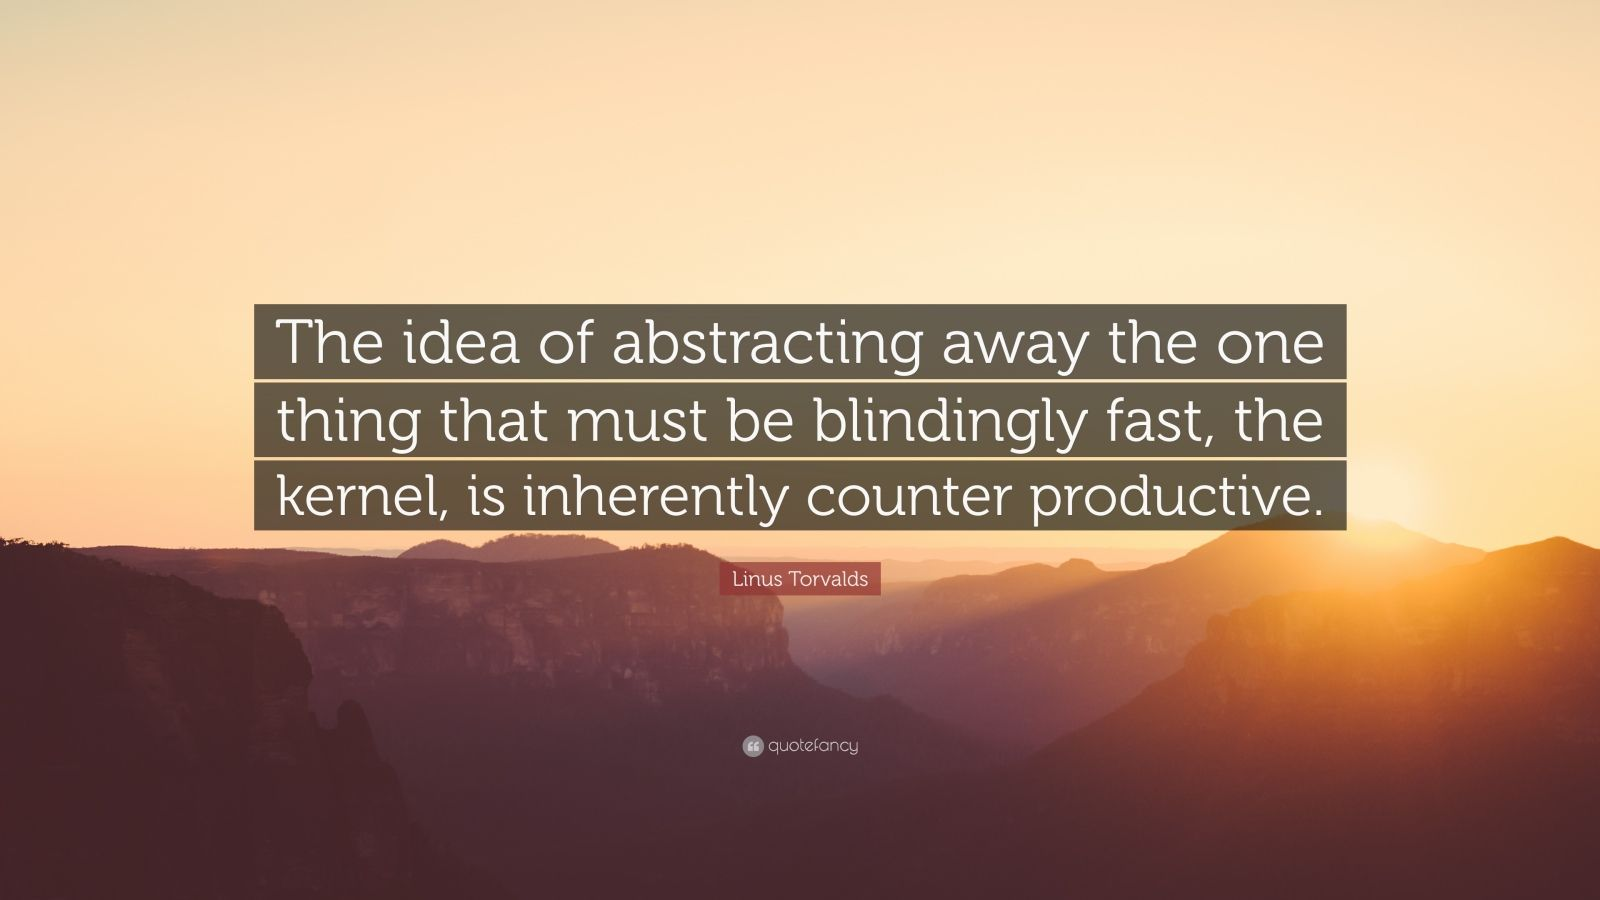 """Linus Torvalds Quote: """"The idea of abstracting away the one thing that must be blindingly fast, the kernel, is inherently counter productive."""""""